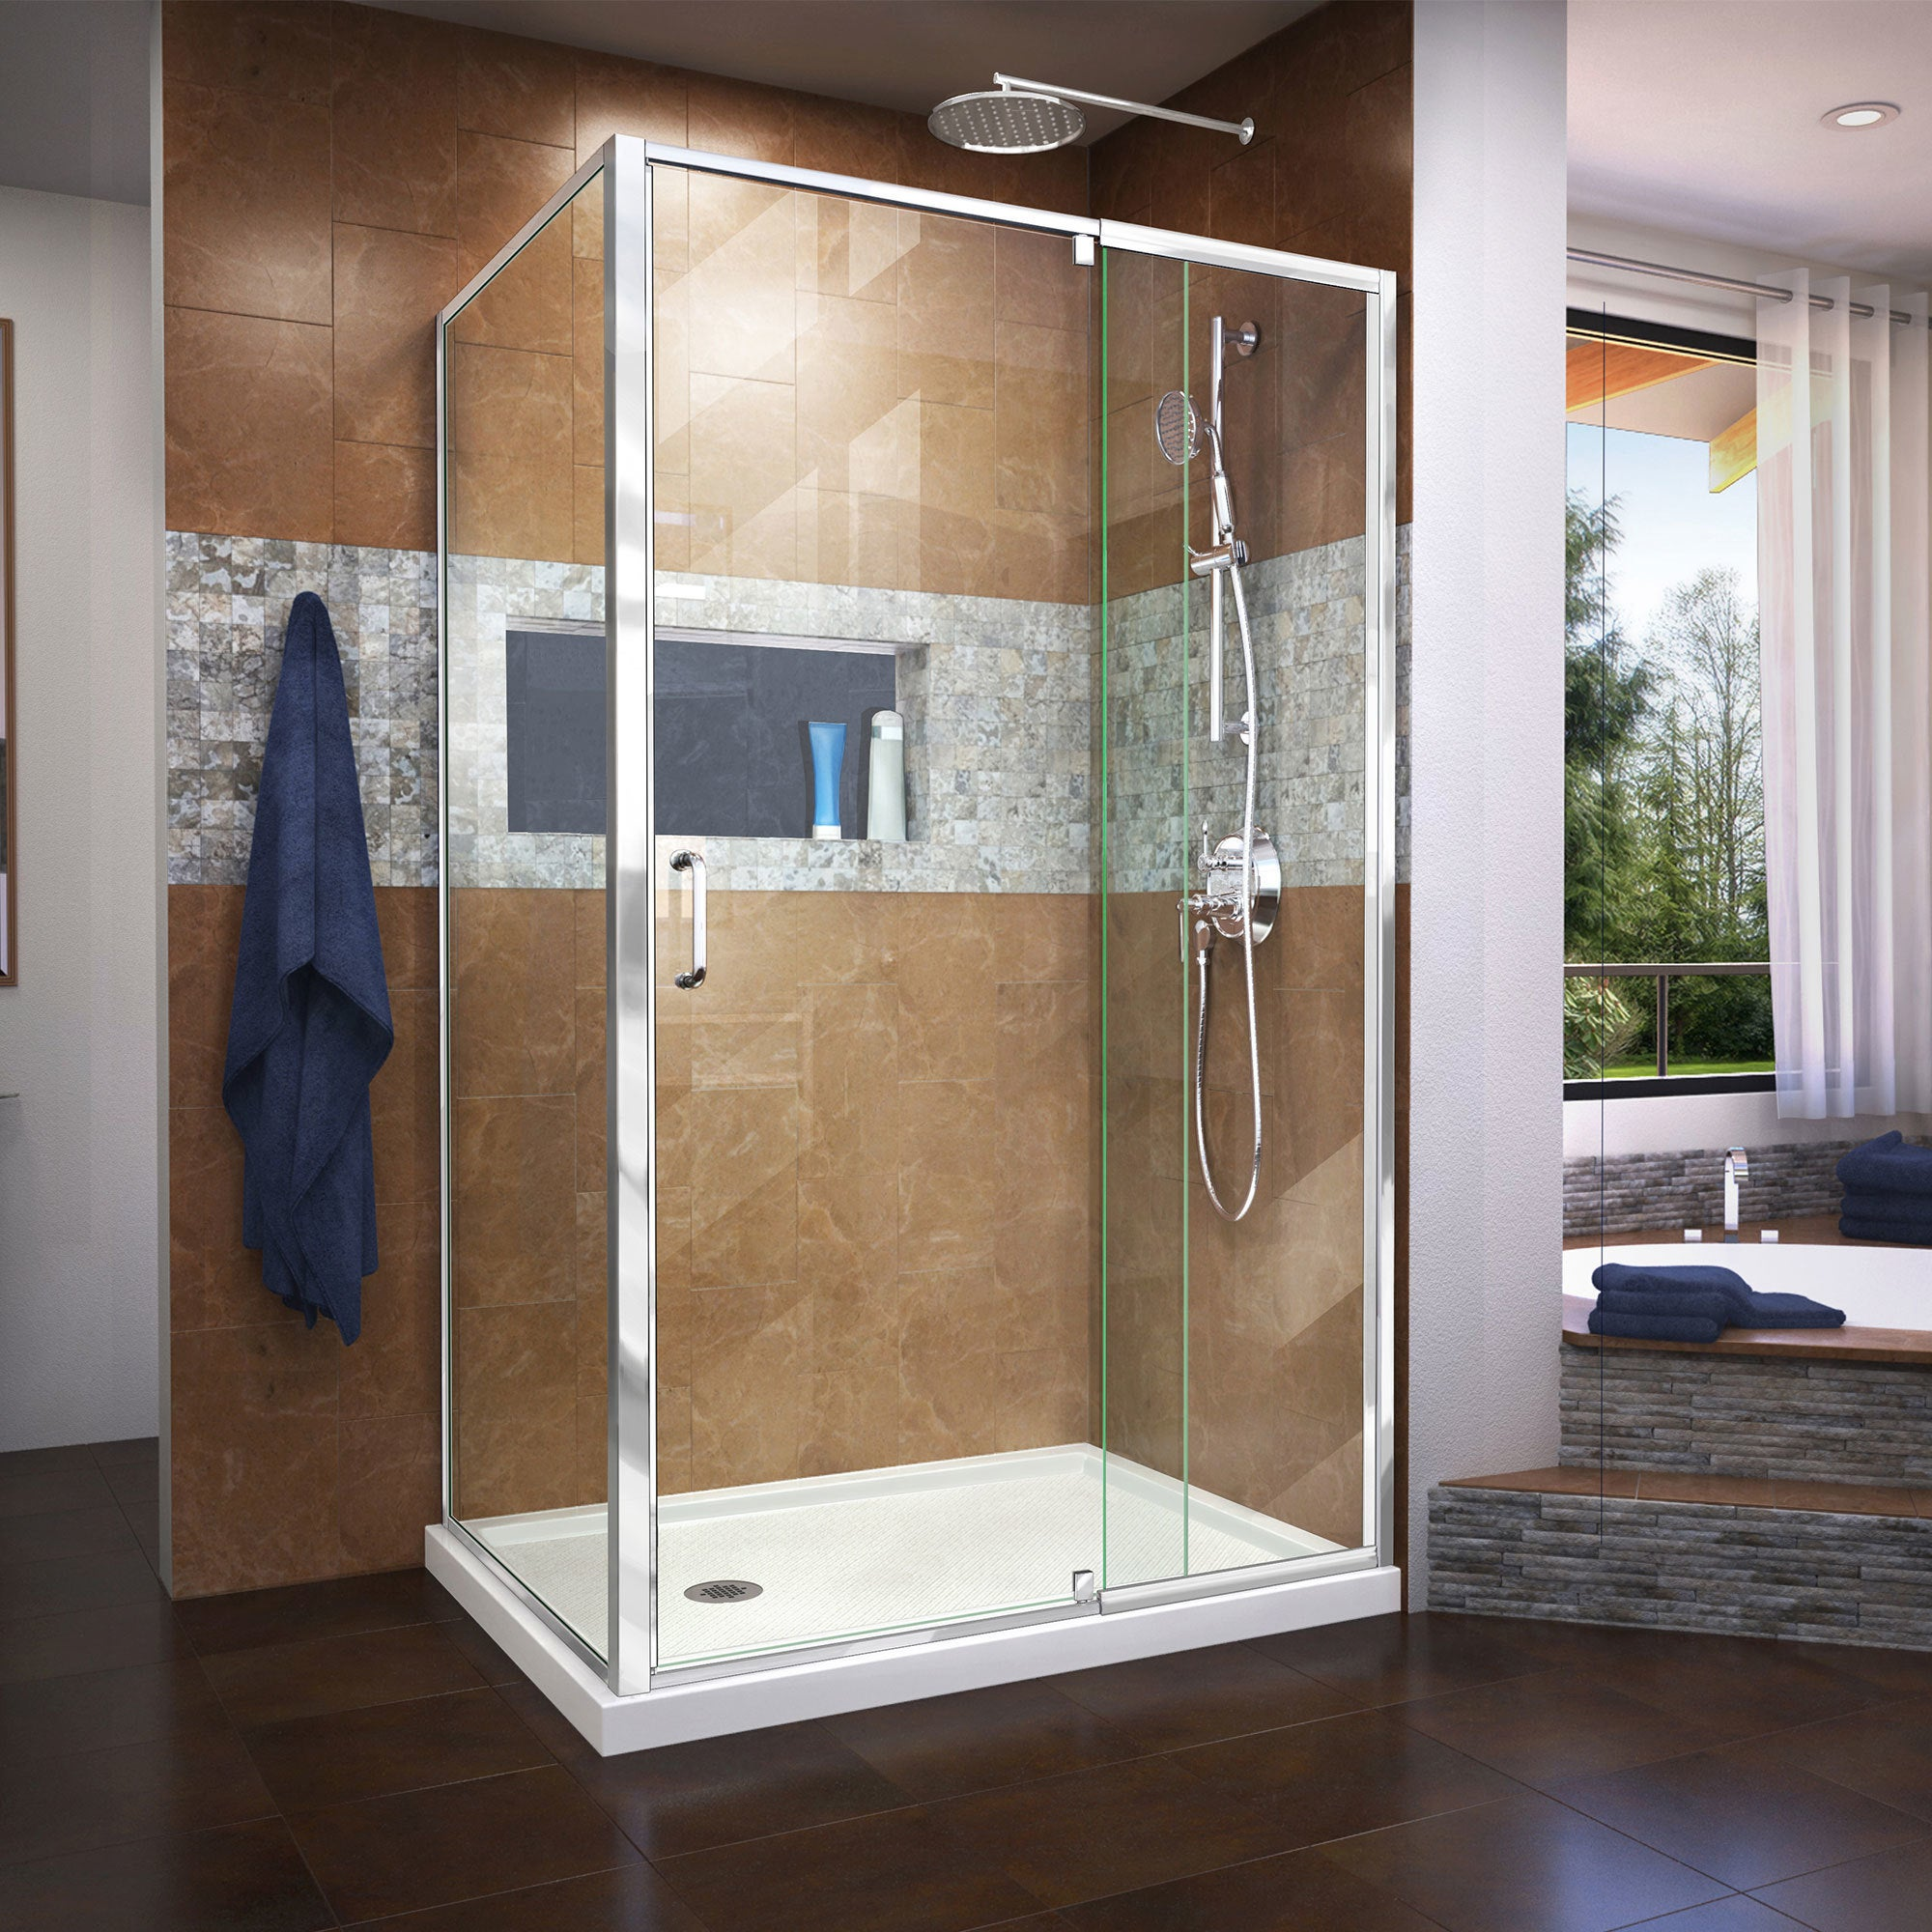 Shop Dreamline Flex 36 In D X 48 In W X 74 34 In H Frameless